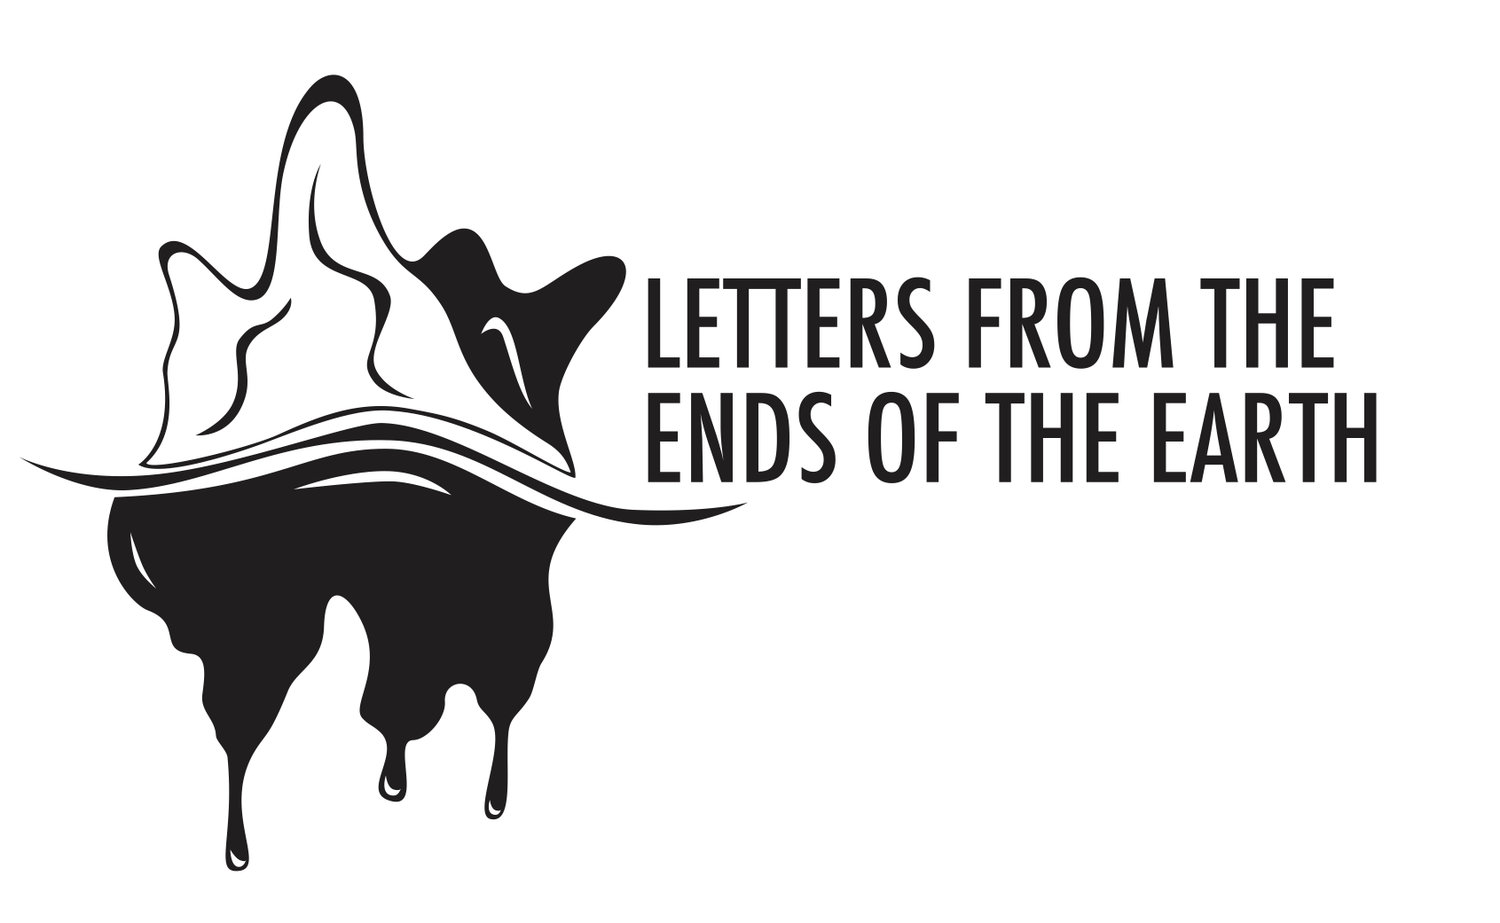 Letters From the Ends of the Earth